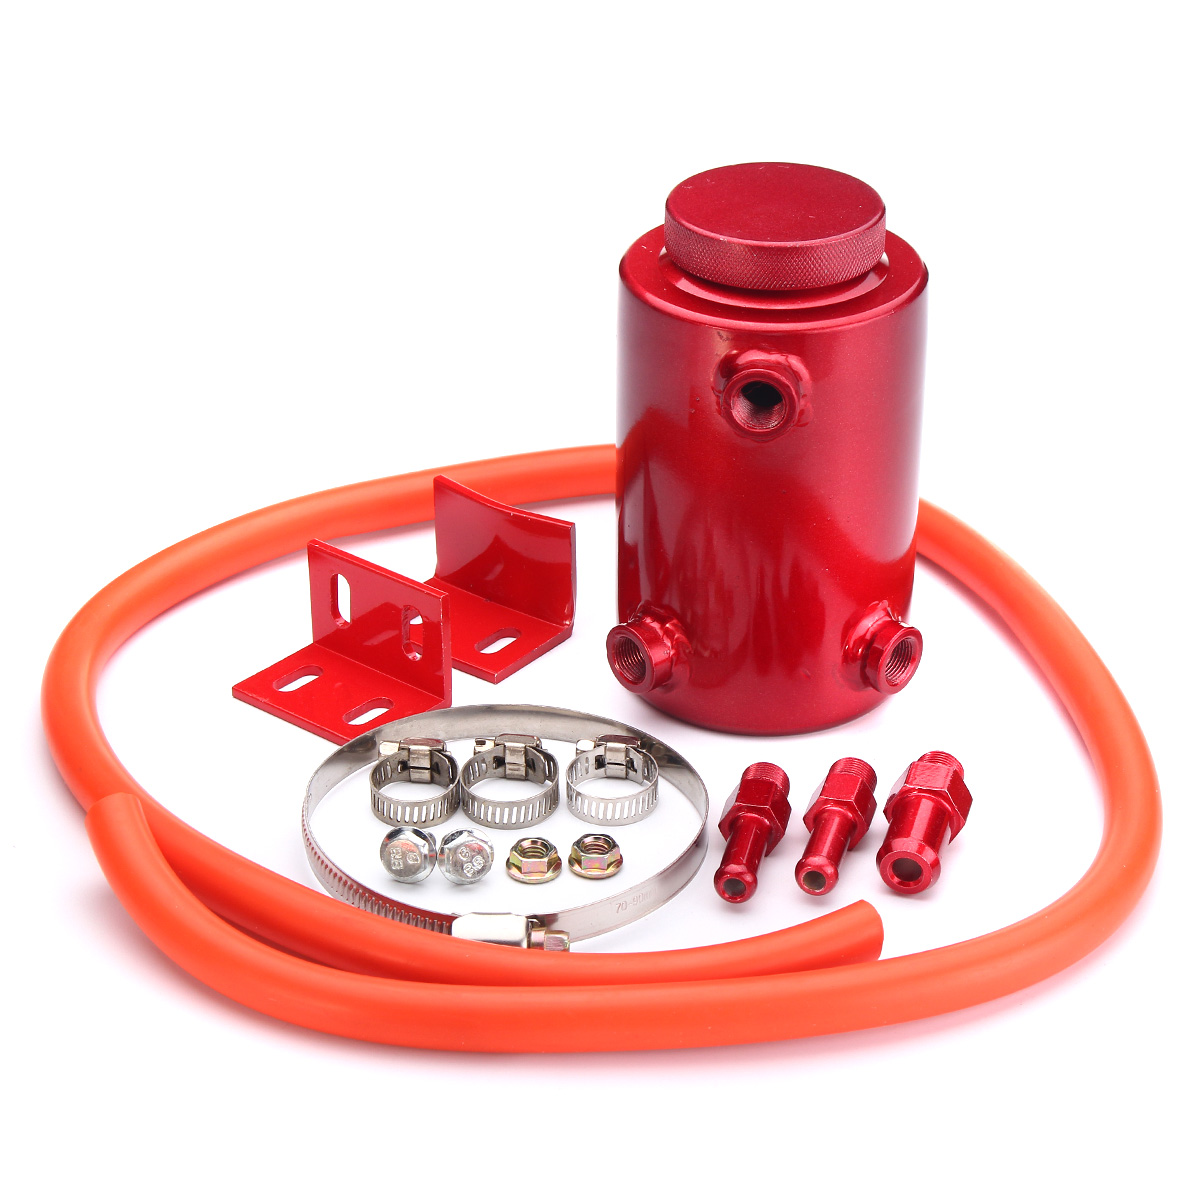 Aluminum Engine Oil Reservoir Catch Can Tank Kit Breather Waste Oil Recycling Red Black